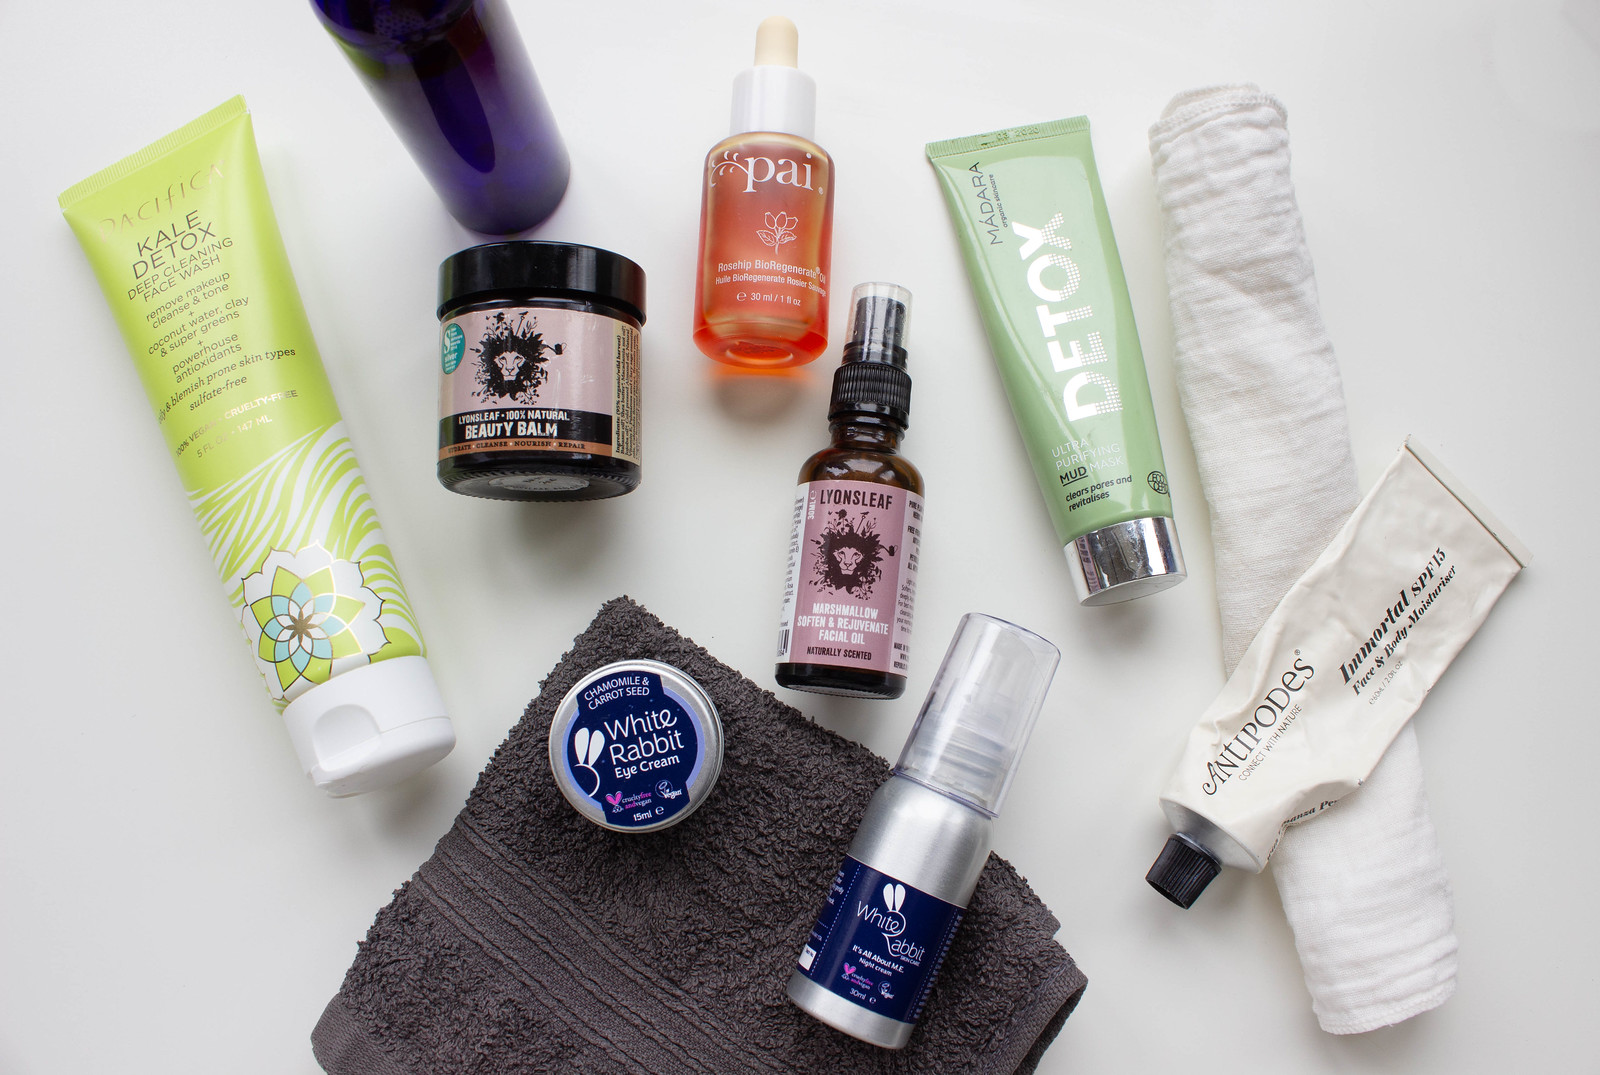 A collection of low waste, vegan-friendly skincare products